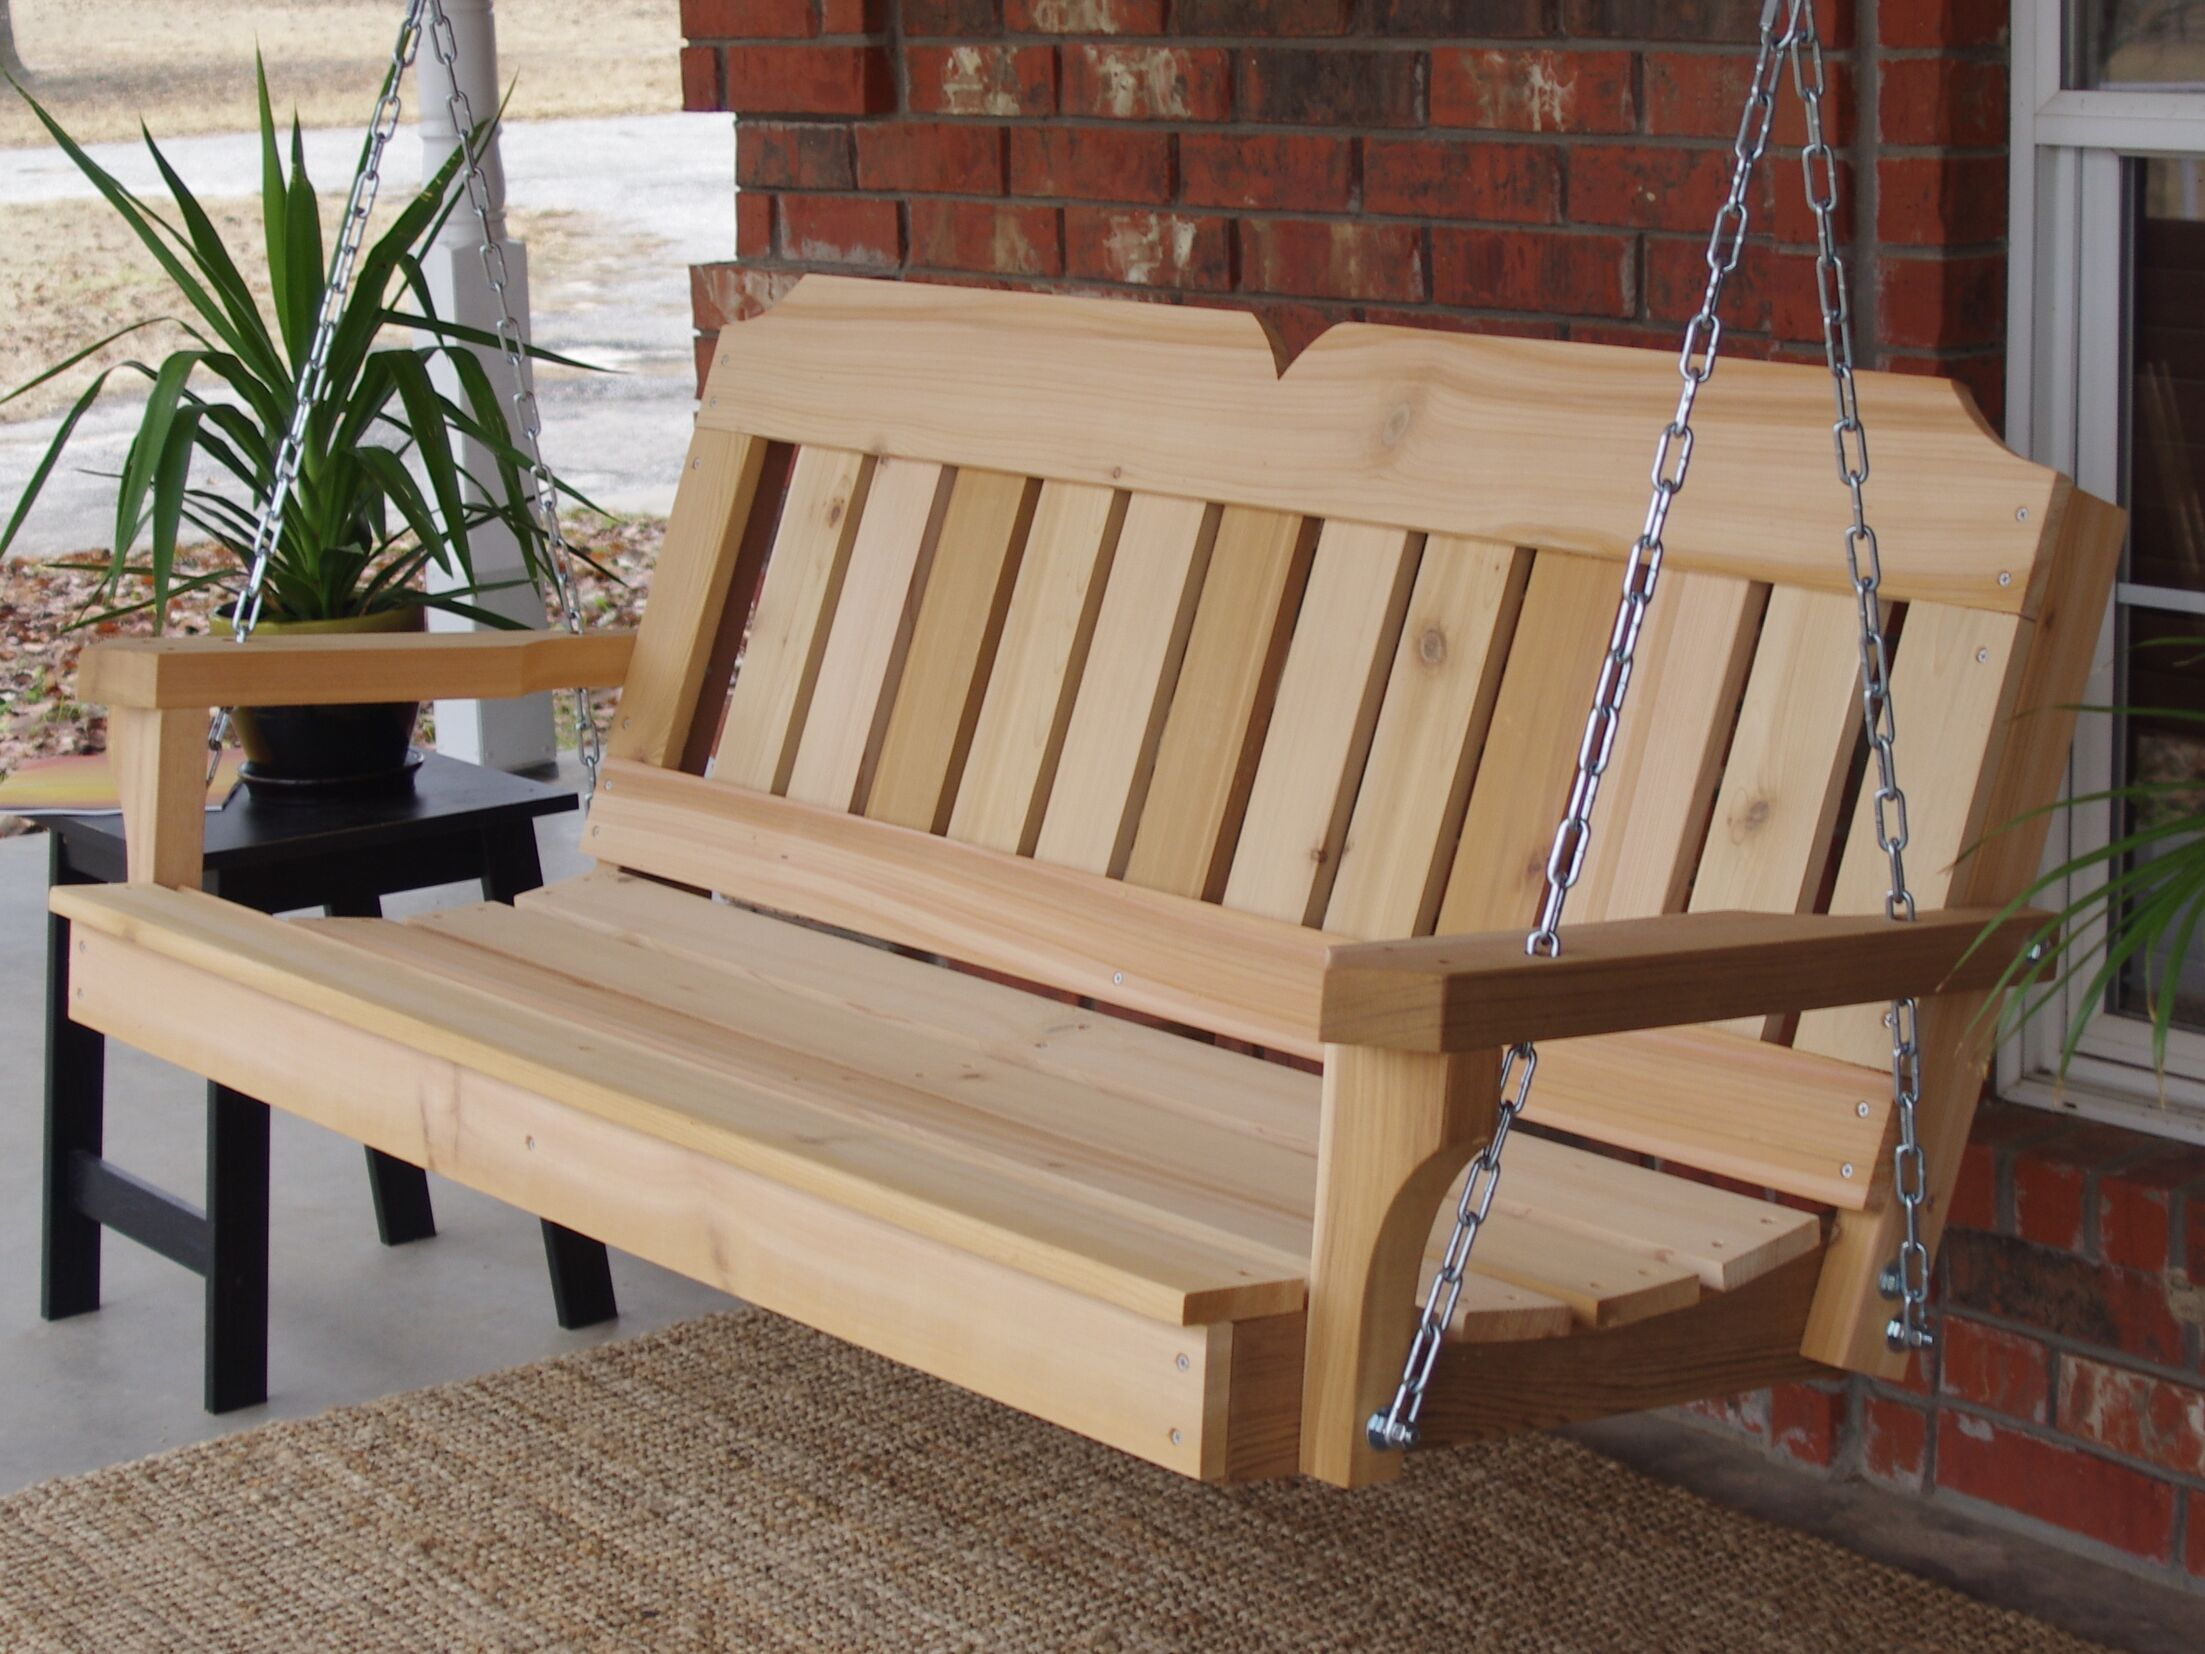 Galusha Cedar Porch Swing Finish: Natural/Stainless Steel, Size: 24